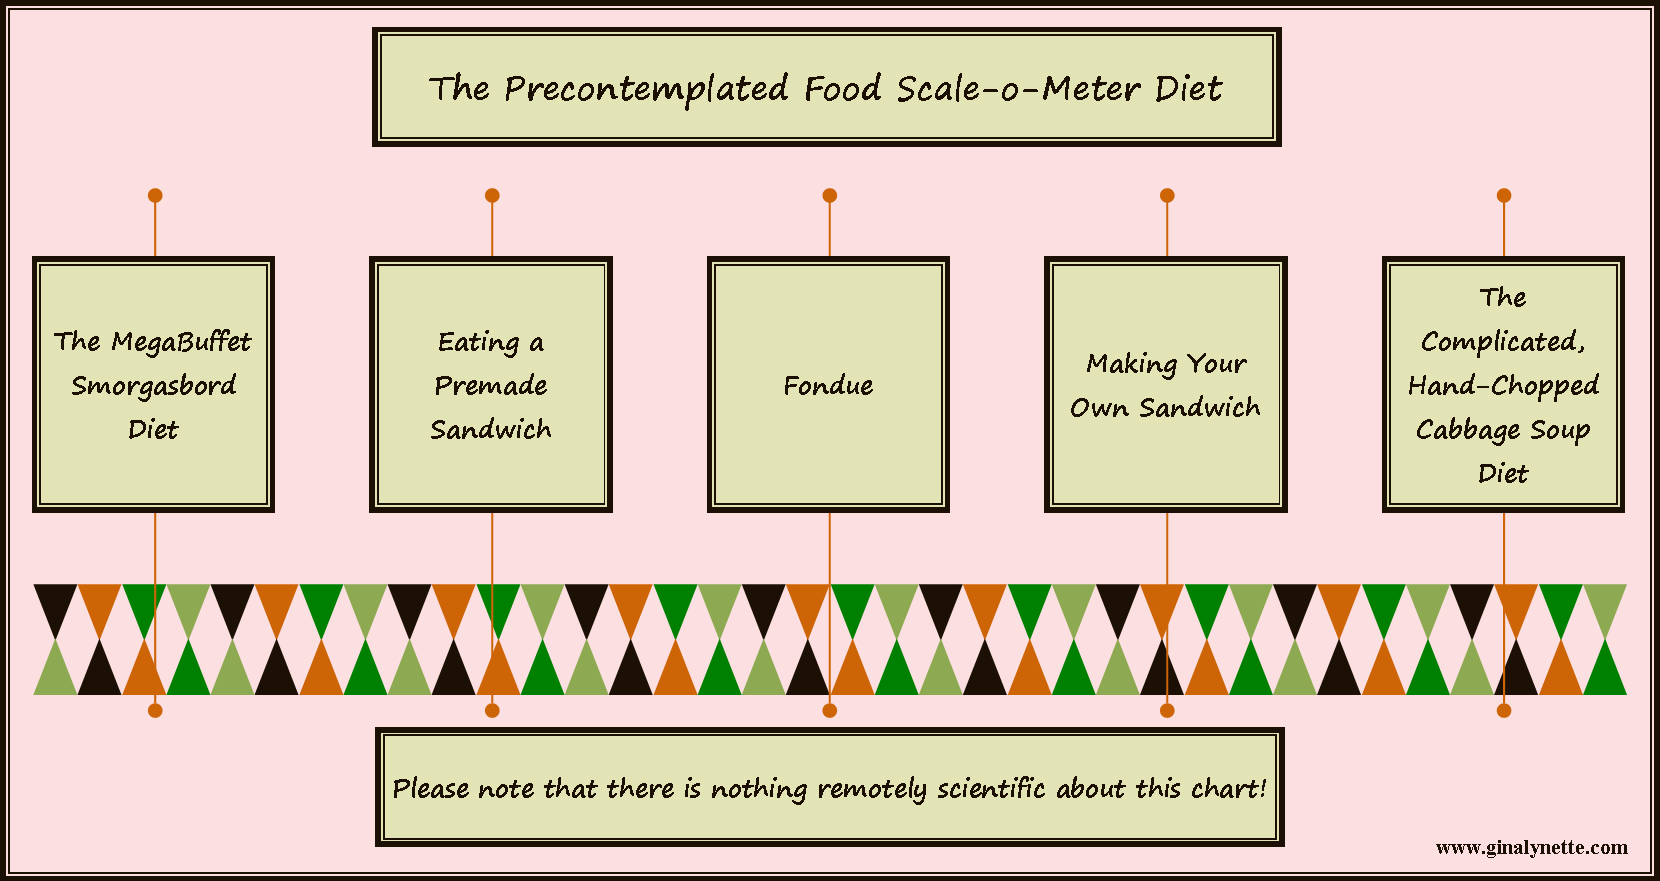 Food Scale-o-Meter: Not to Scale